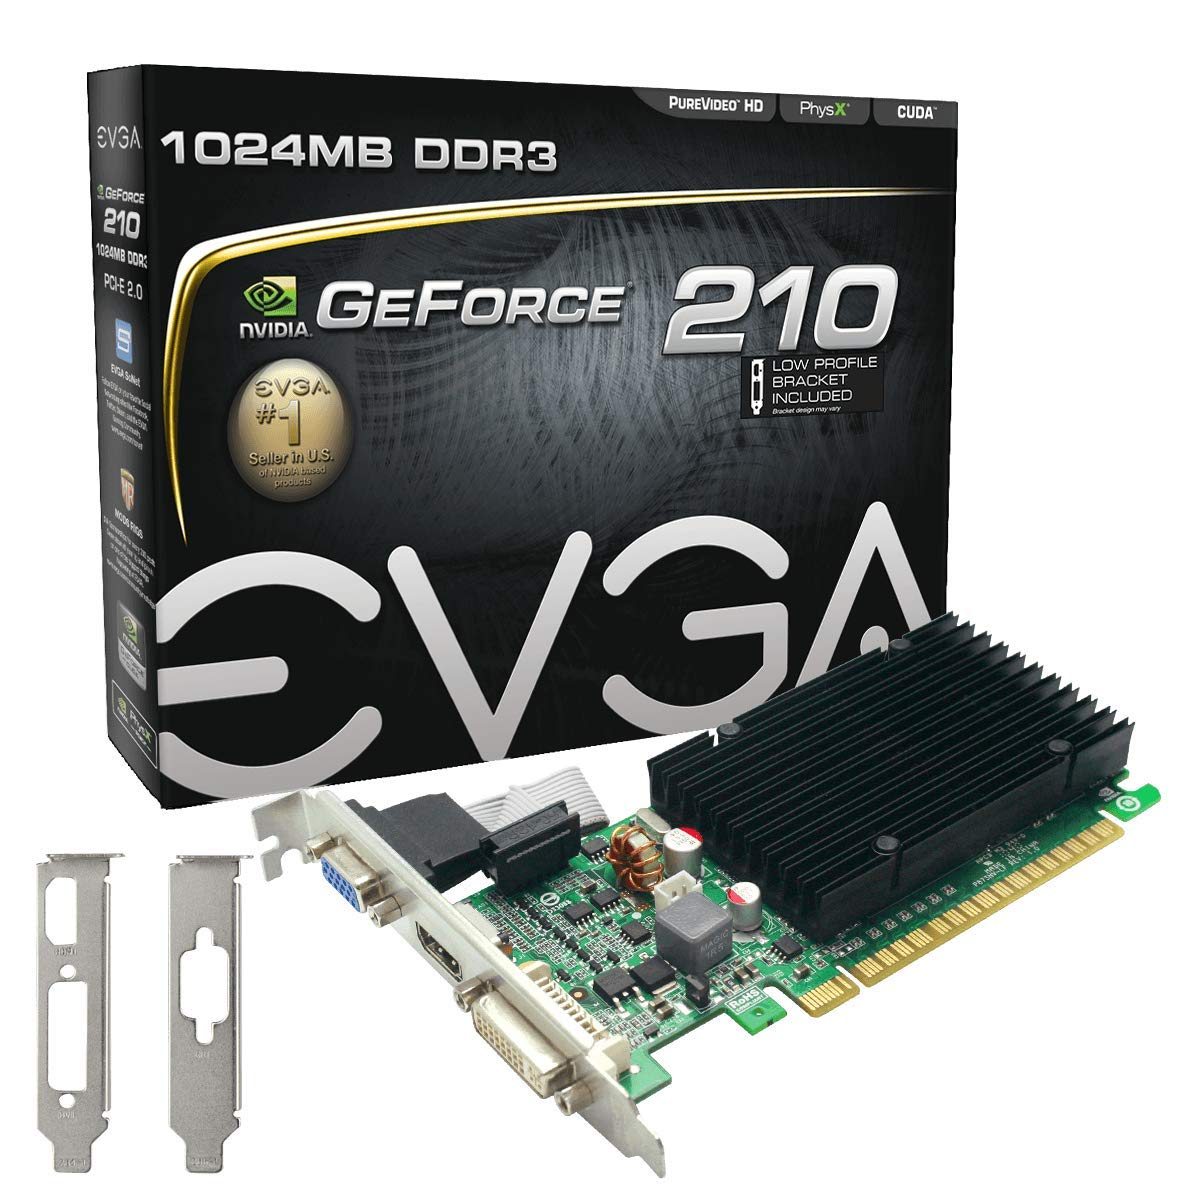 EVGA GeForce 210 Passive 1024 MB DDR3 PCI Express 2.0 DVI/HDMI/VGA Graphics Card, 01G-P3-1313-KR by EVGA (Image #1)